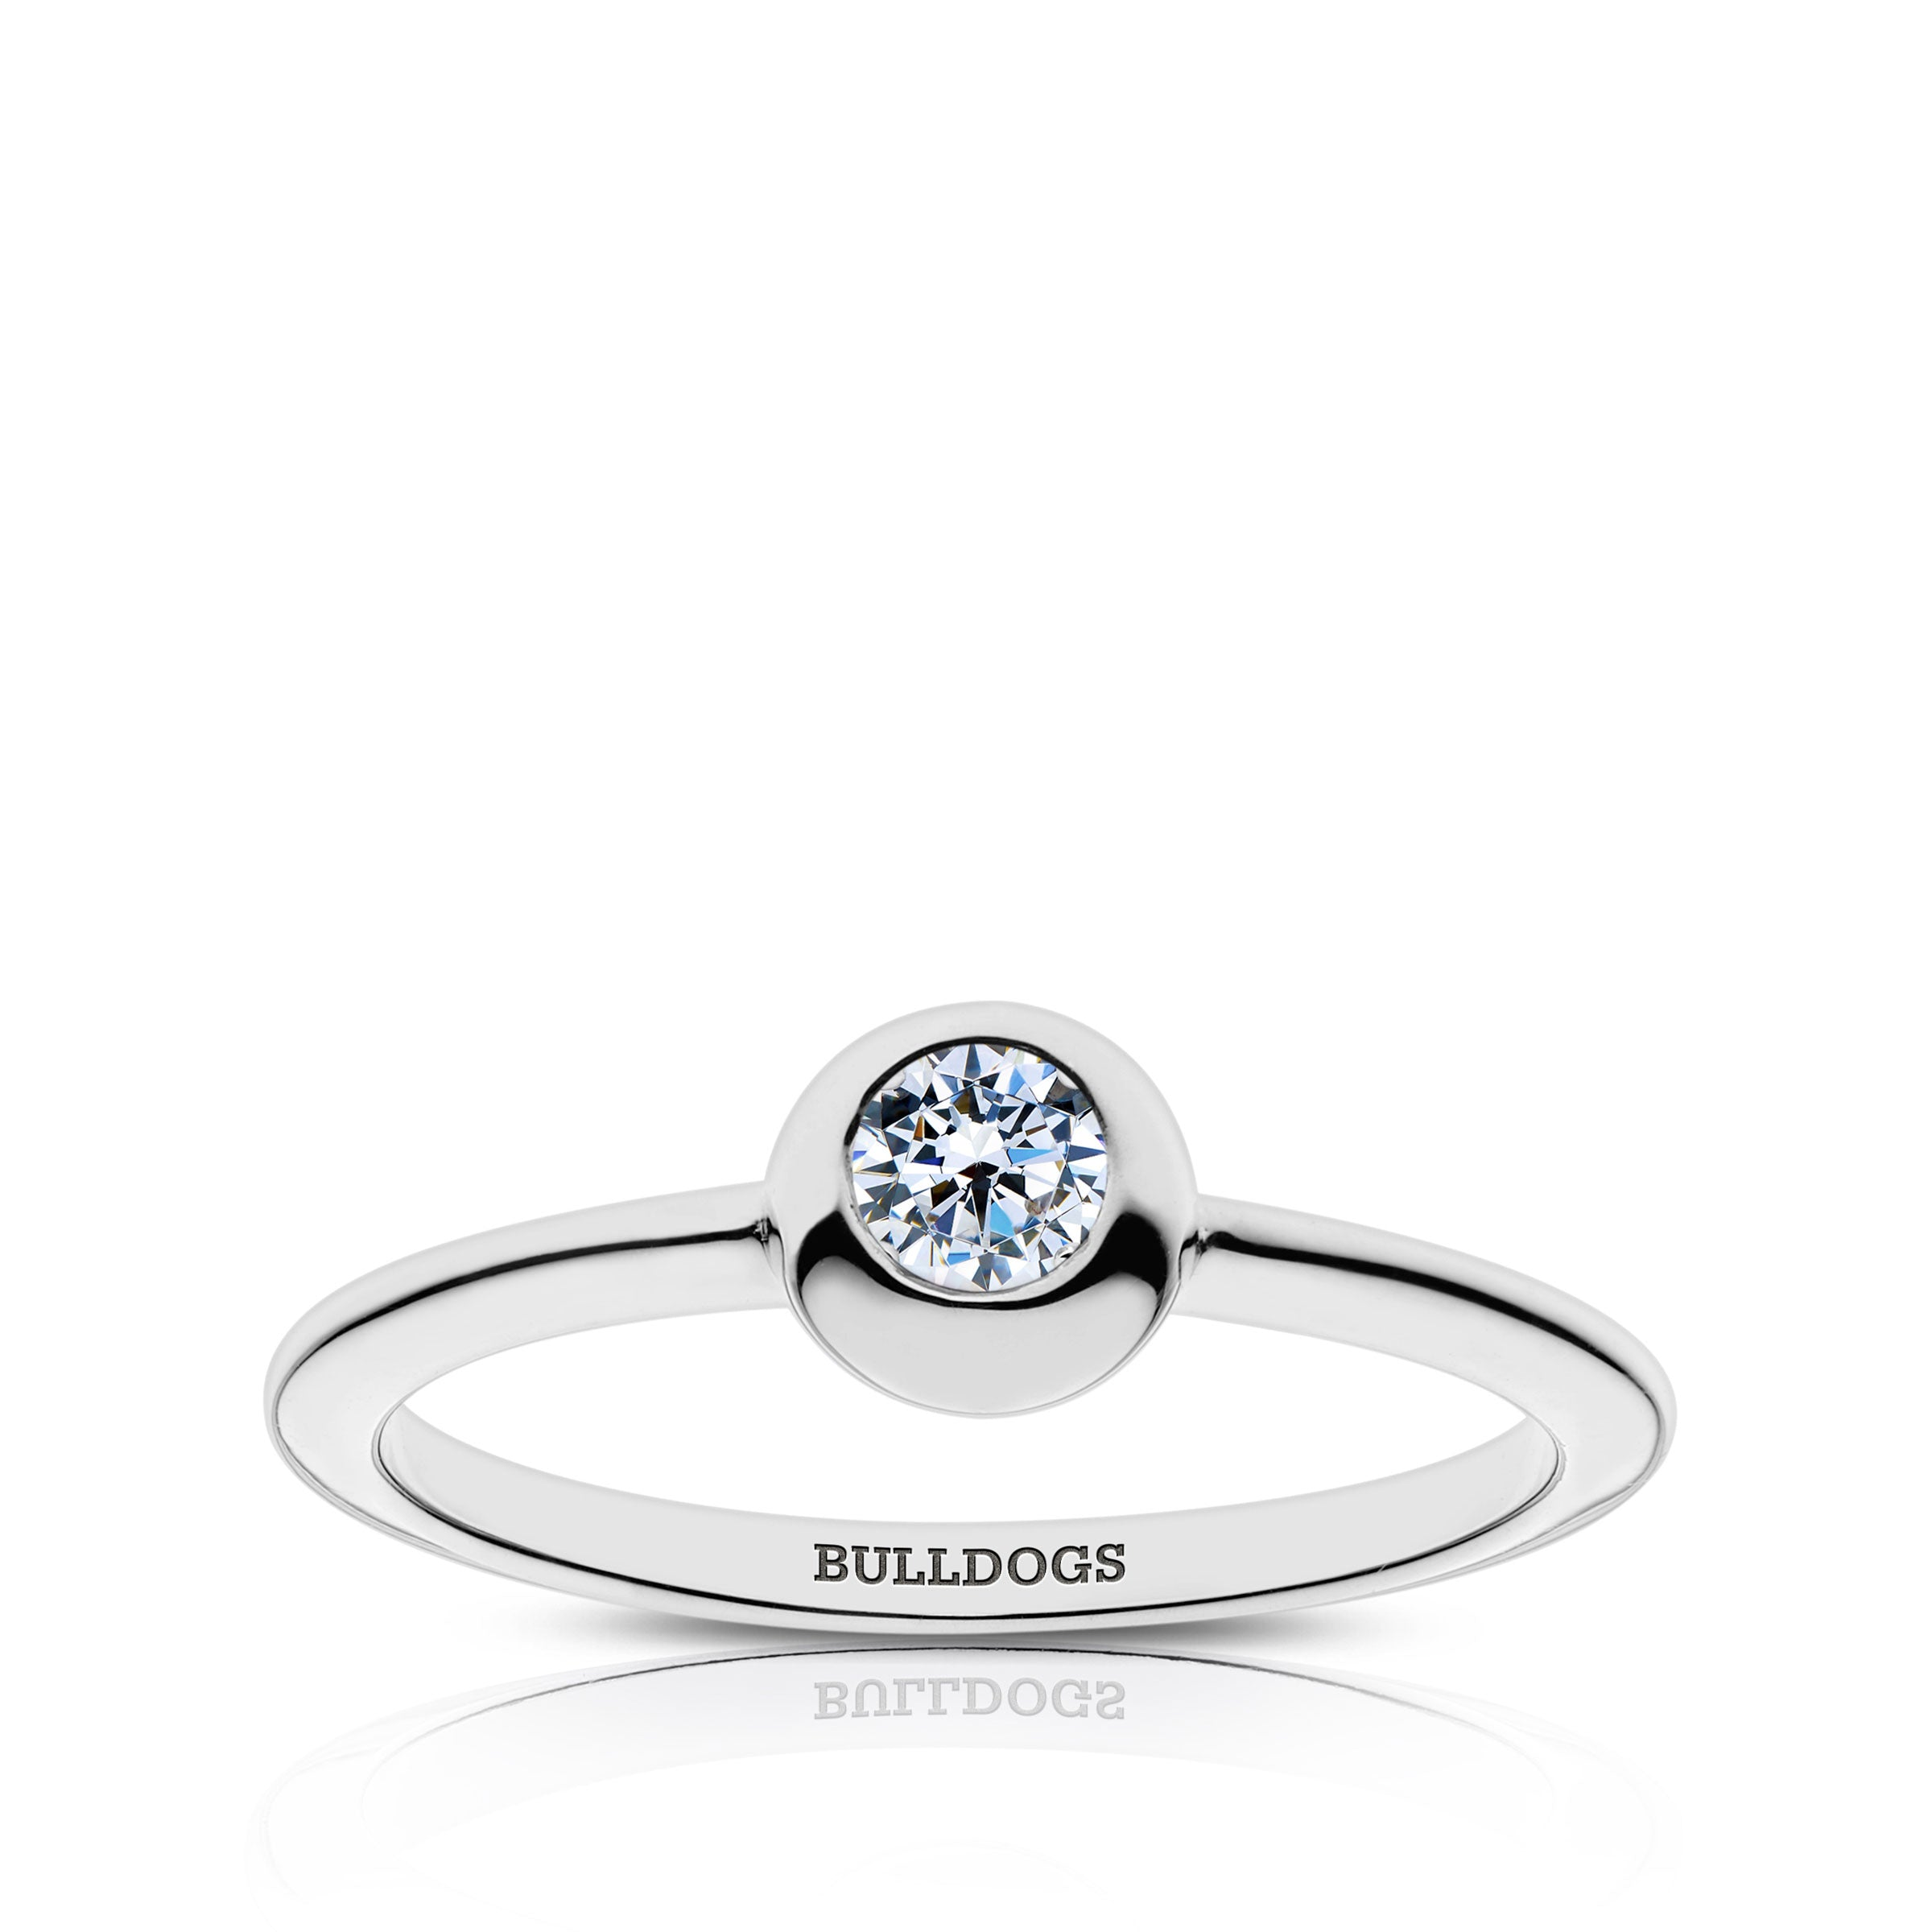 Bulldogs Engraved Diamond Ring Size 5